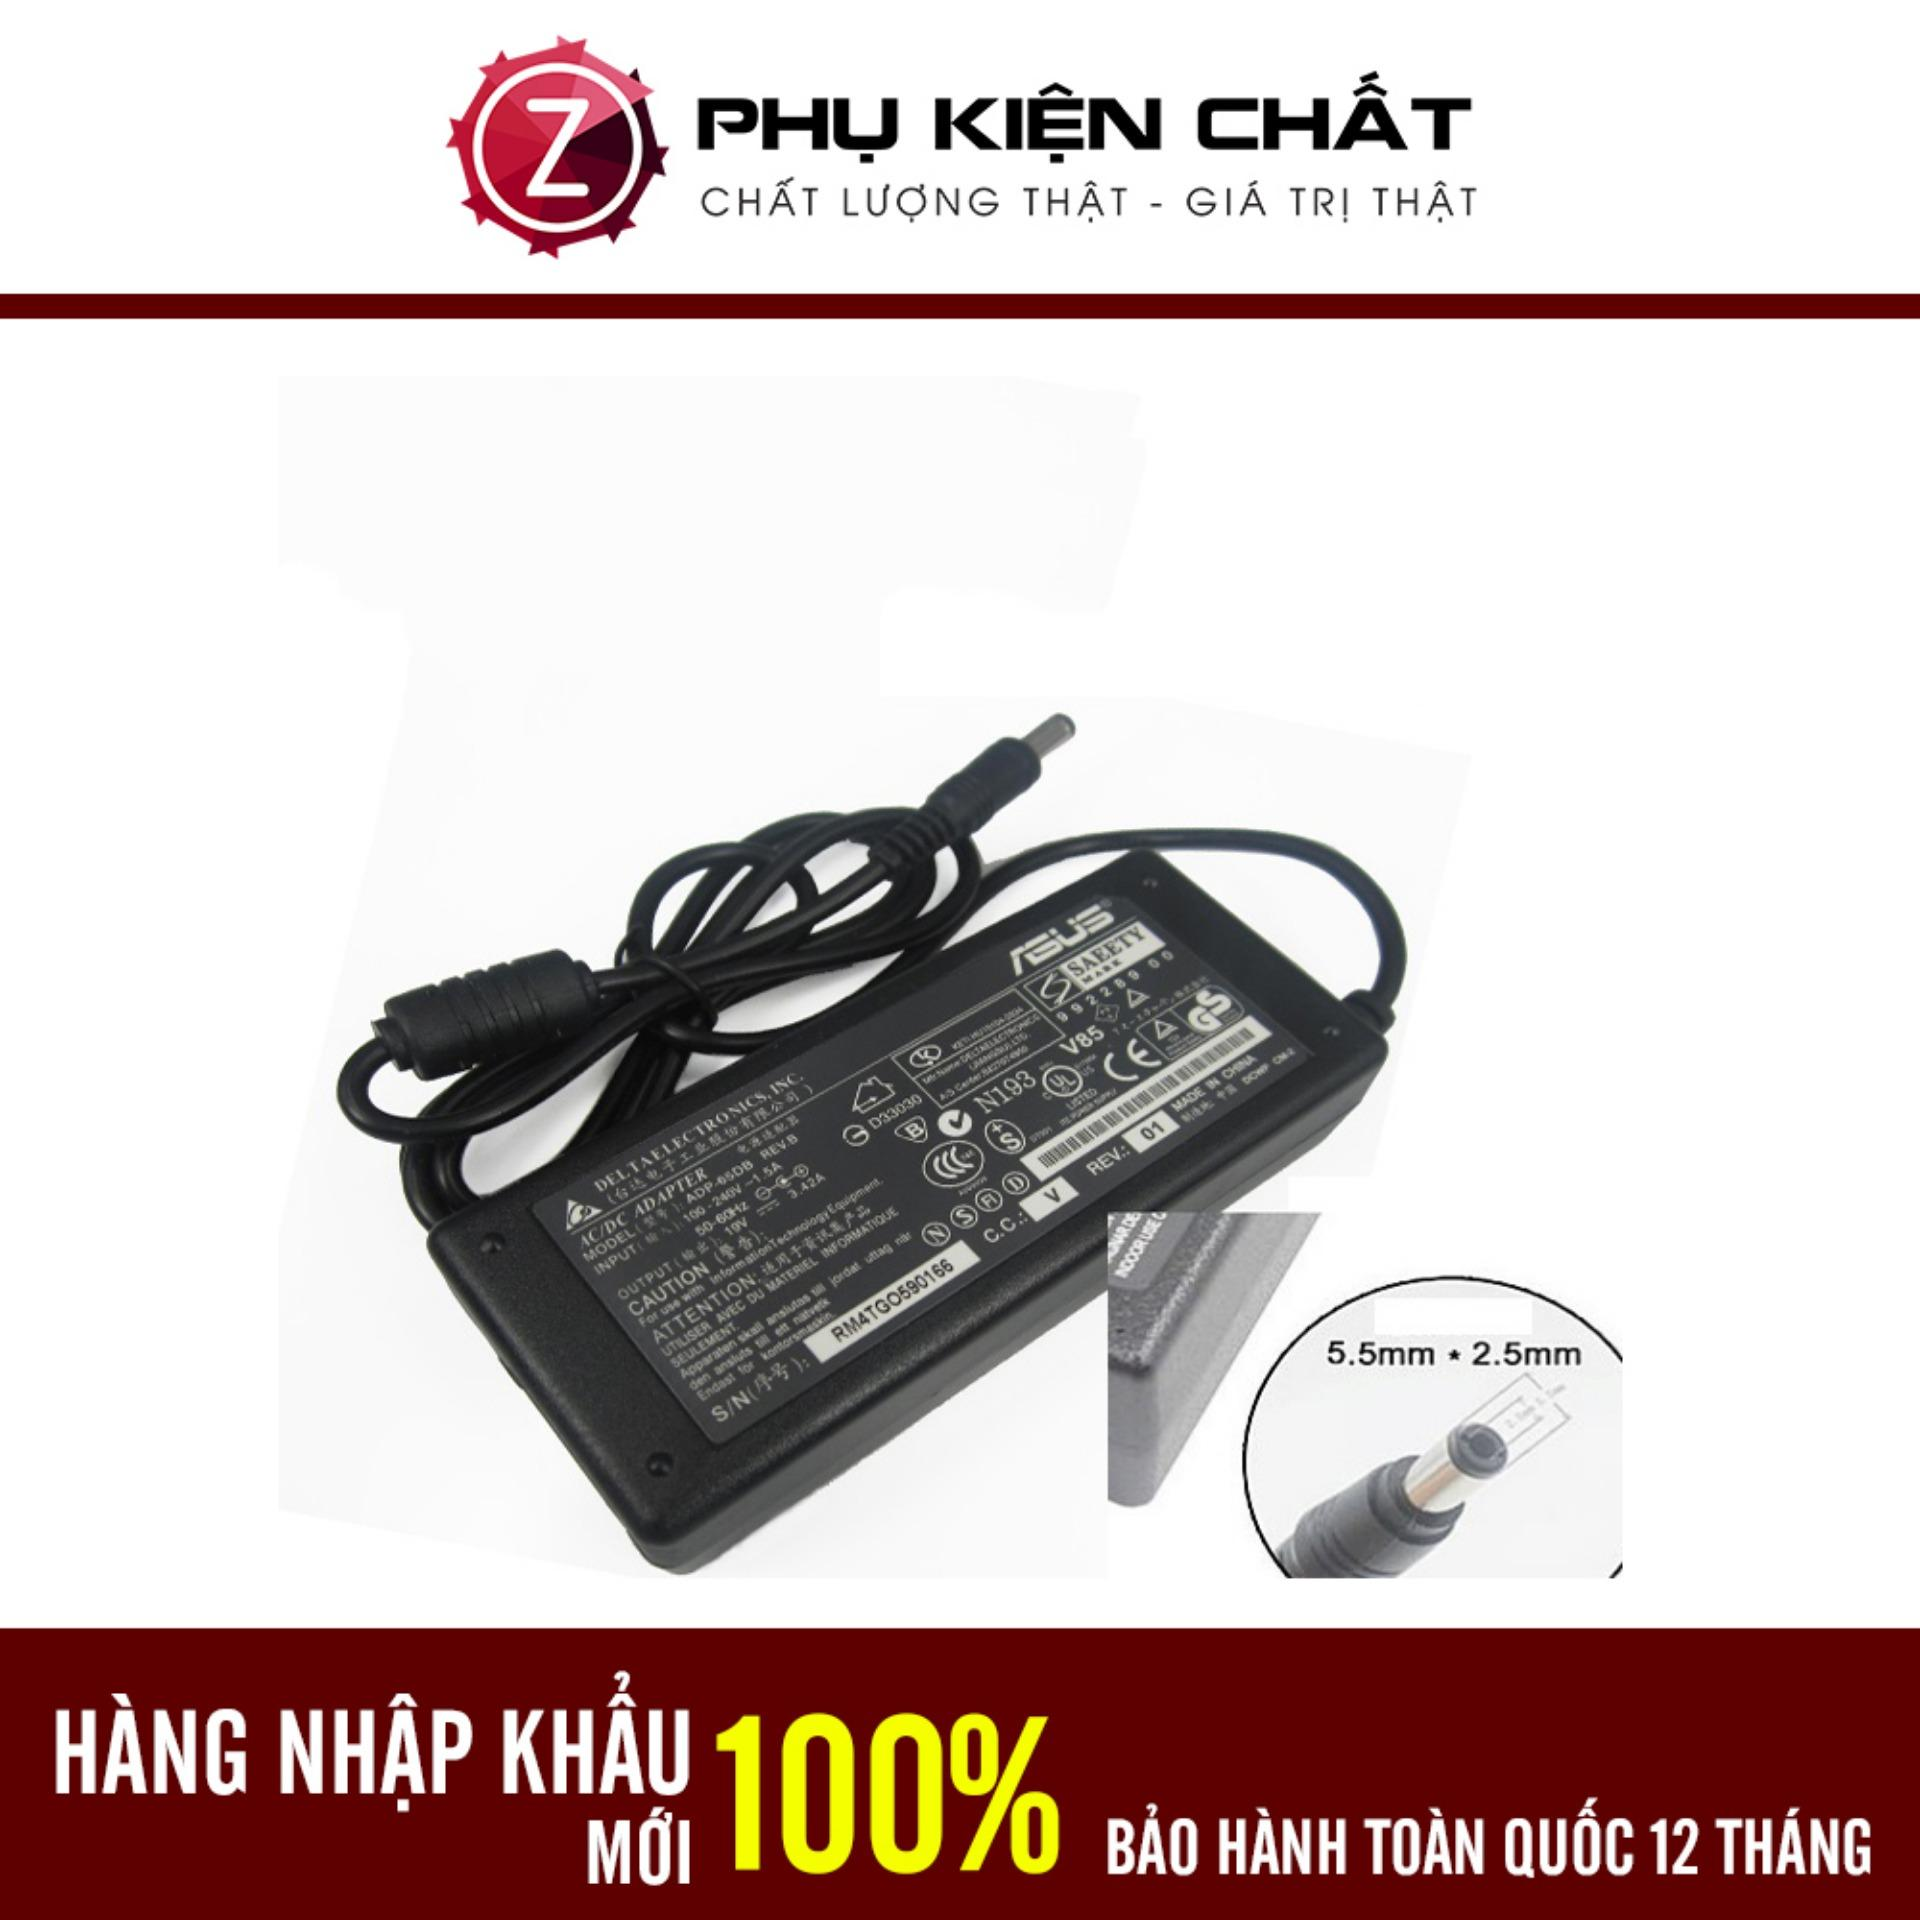 Dvd Rom Asus A46c Adaptor Charger Original A46 A46ca A46cb A46cm 19v 342a Hnh Nh Sc Laptop 65w Hng Nhp Khu